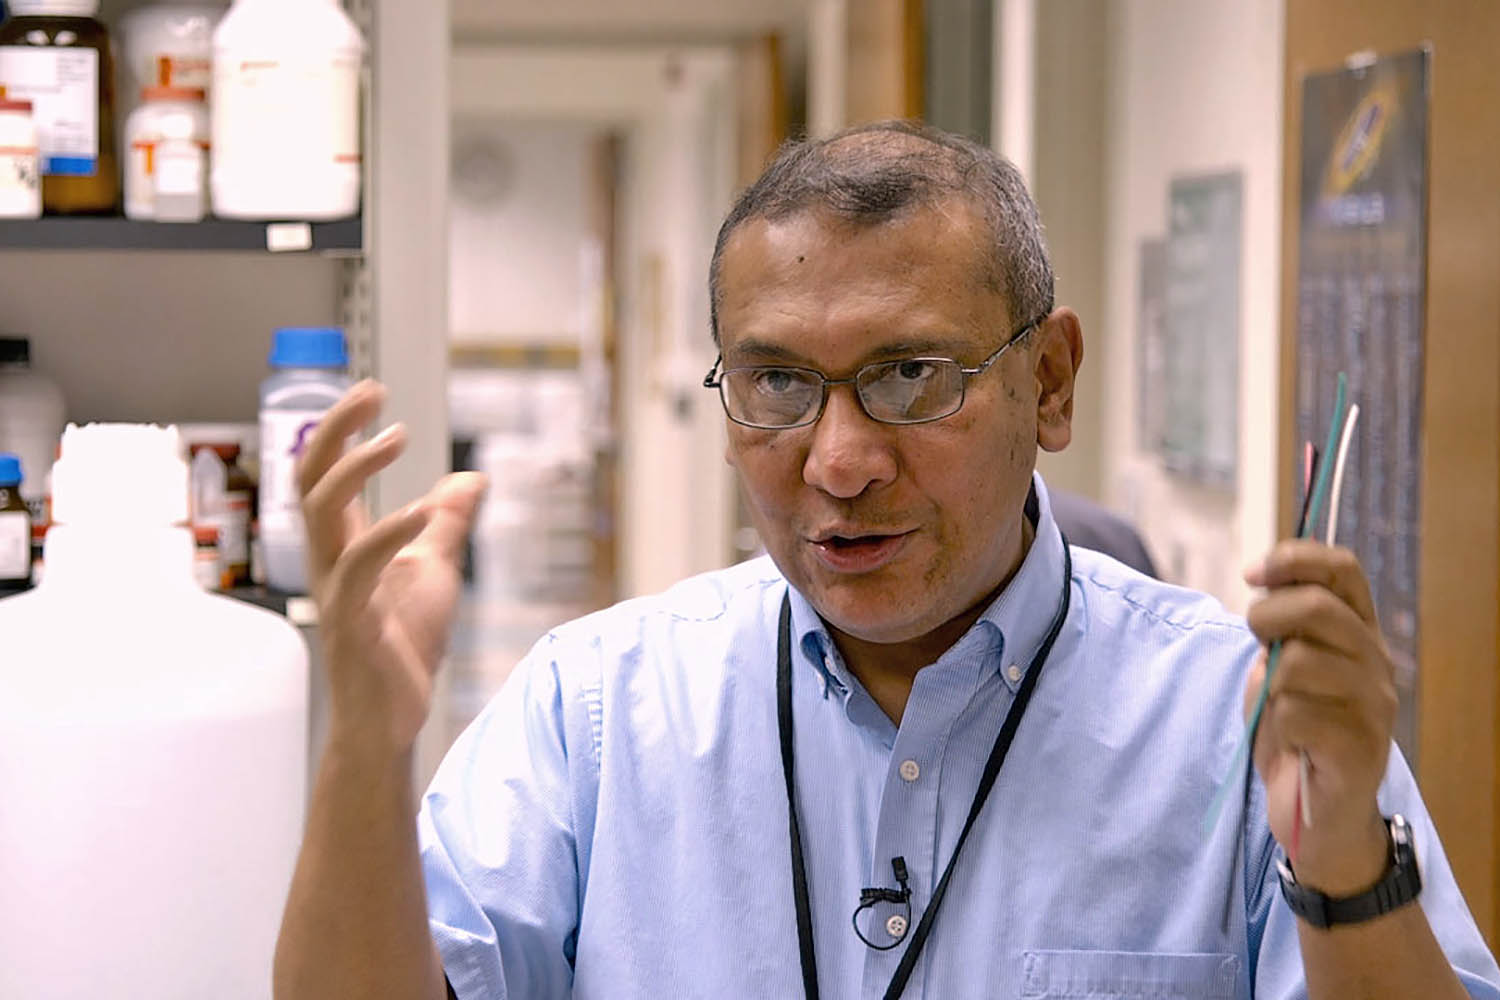 Dr. Anindya Dutta and his team made the discovery while investigating a previously discovered gene his that plays an important role in repairing damaged DNA.